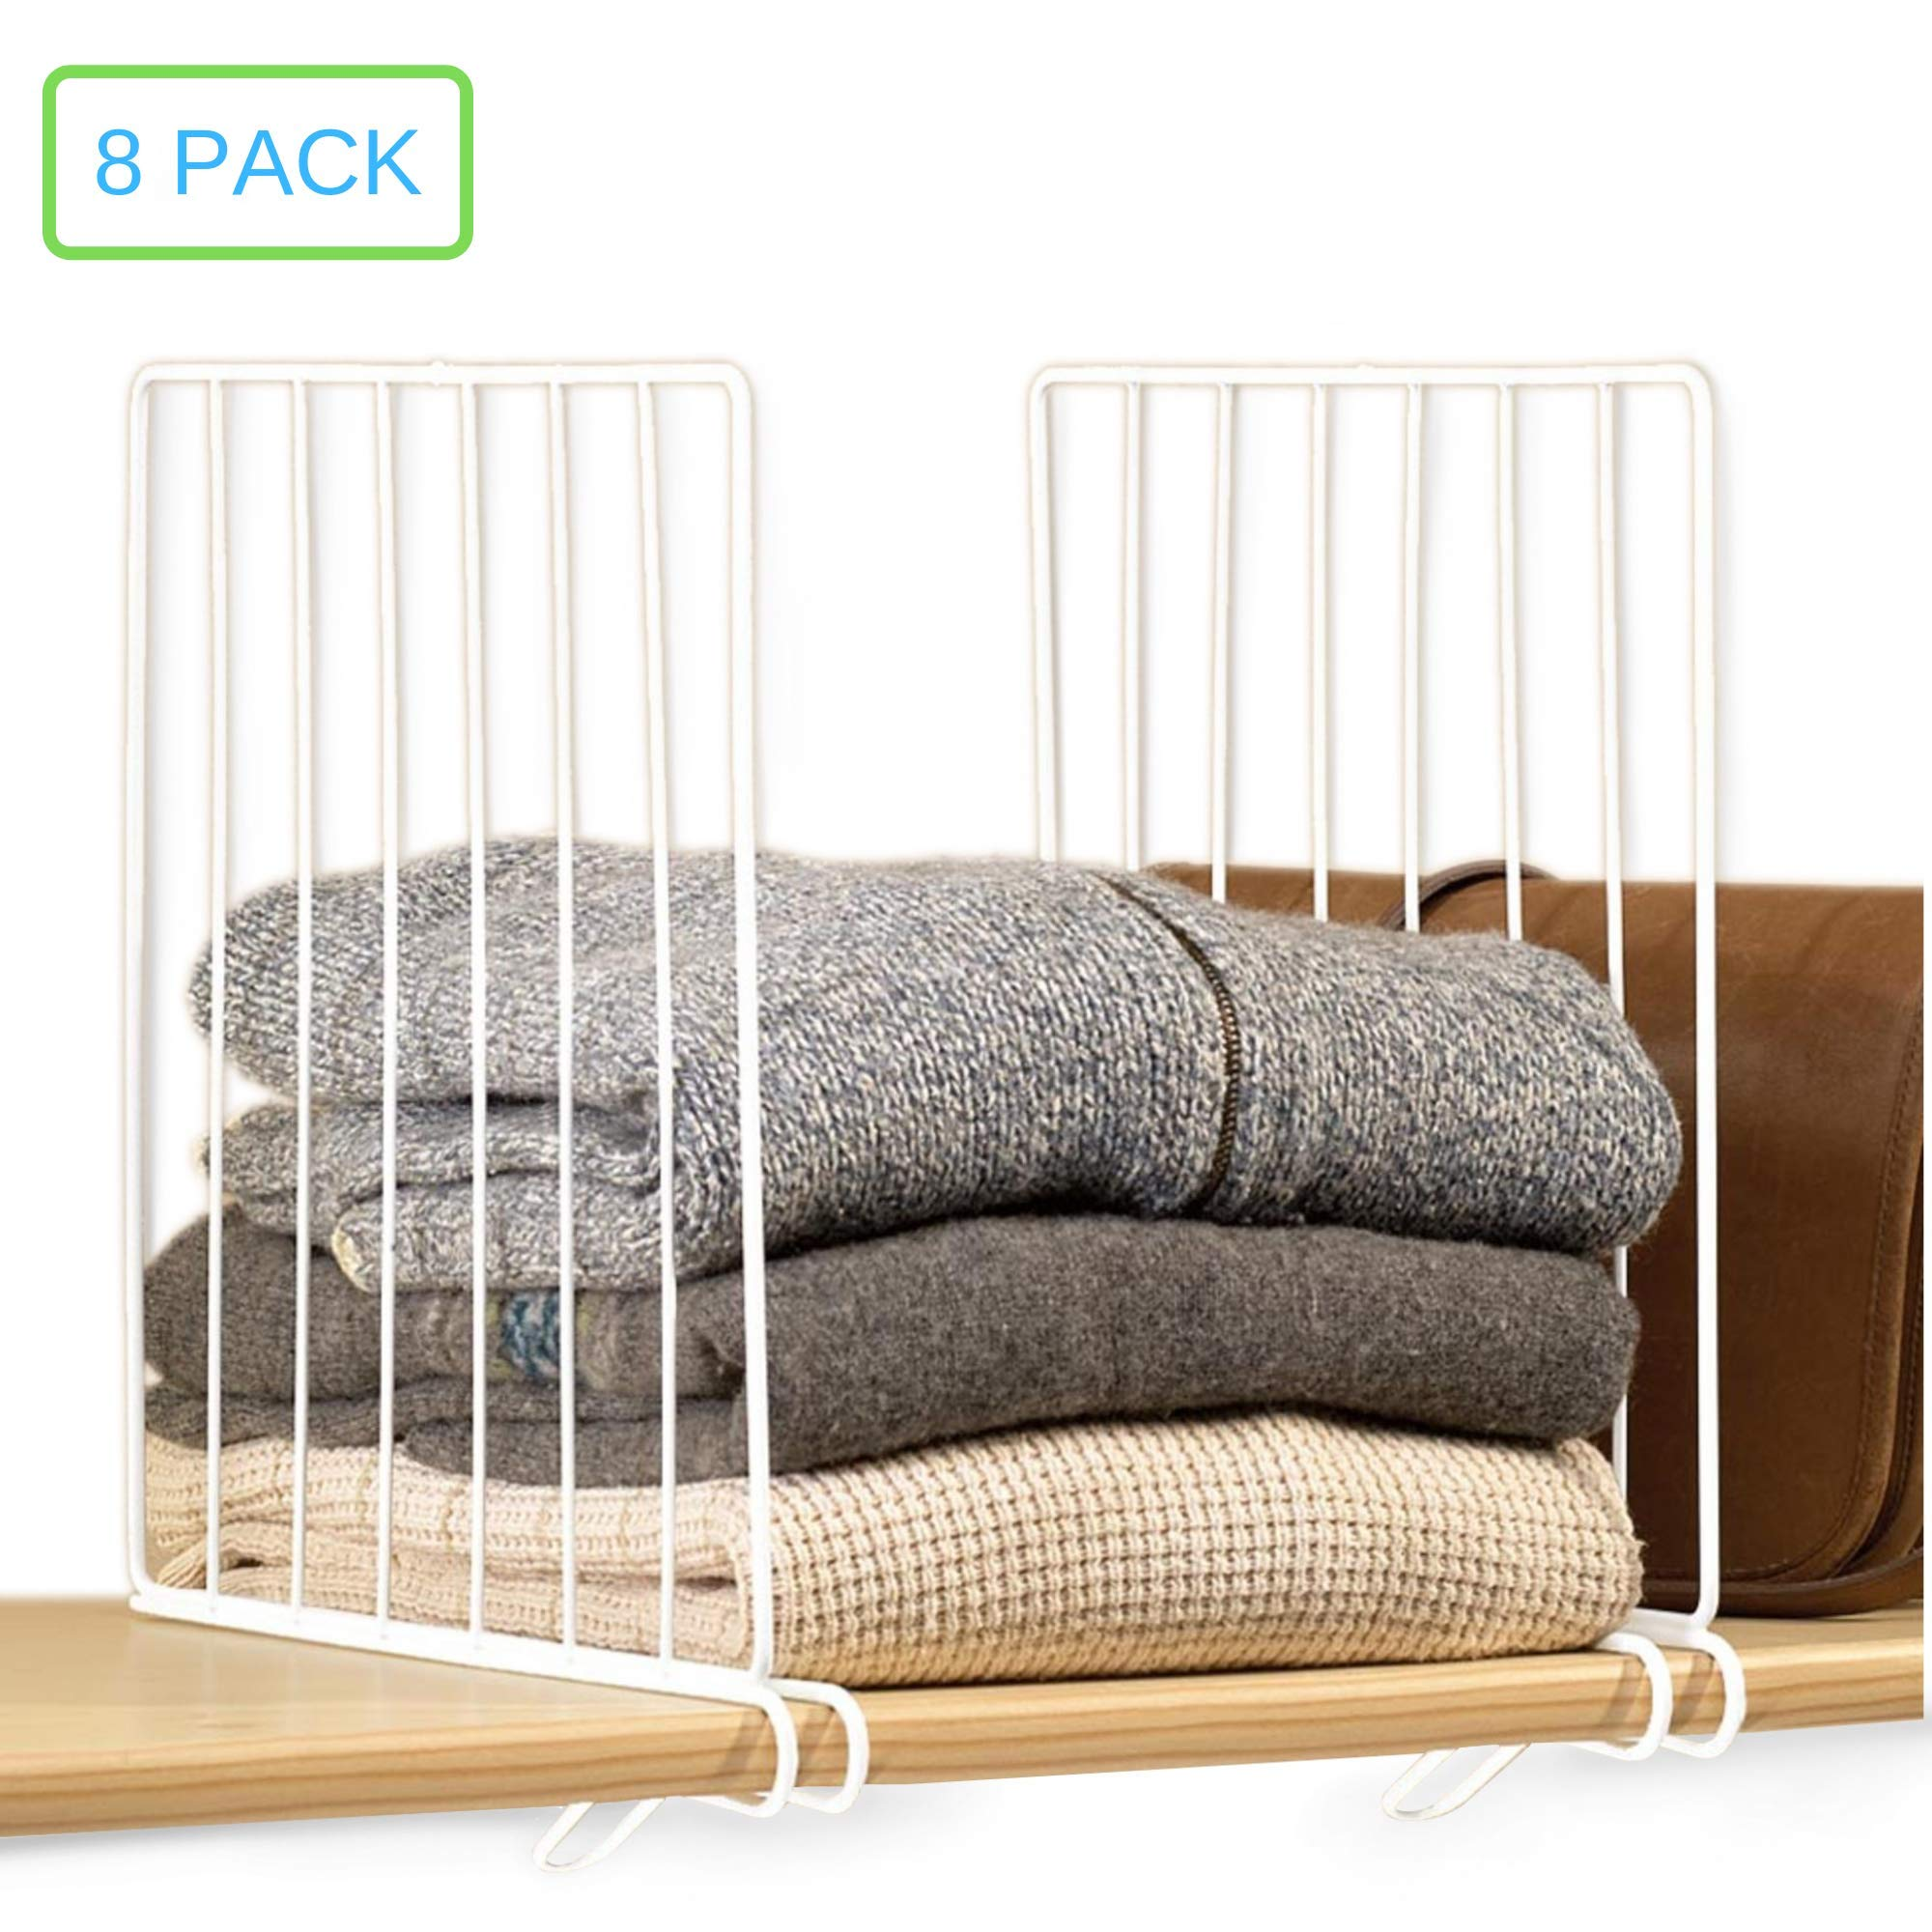 Xabitat Vertical Closet Wood Shelf Divider 2.0 - New and Improved Organizer with Easy Clamping - Powder Coated Steel Wire Wardrobe Separators - Set of 8 - White by Xabitat